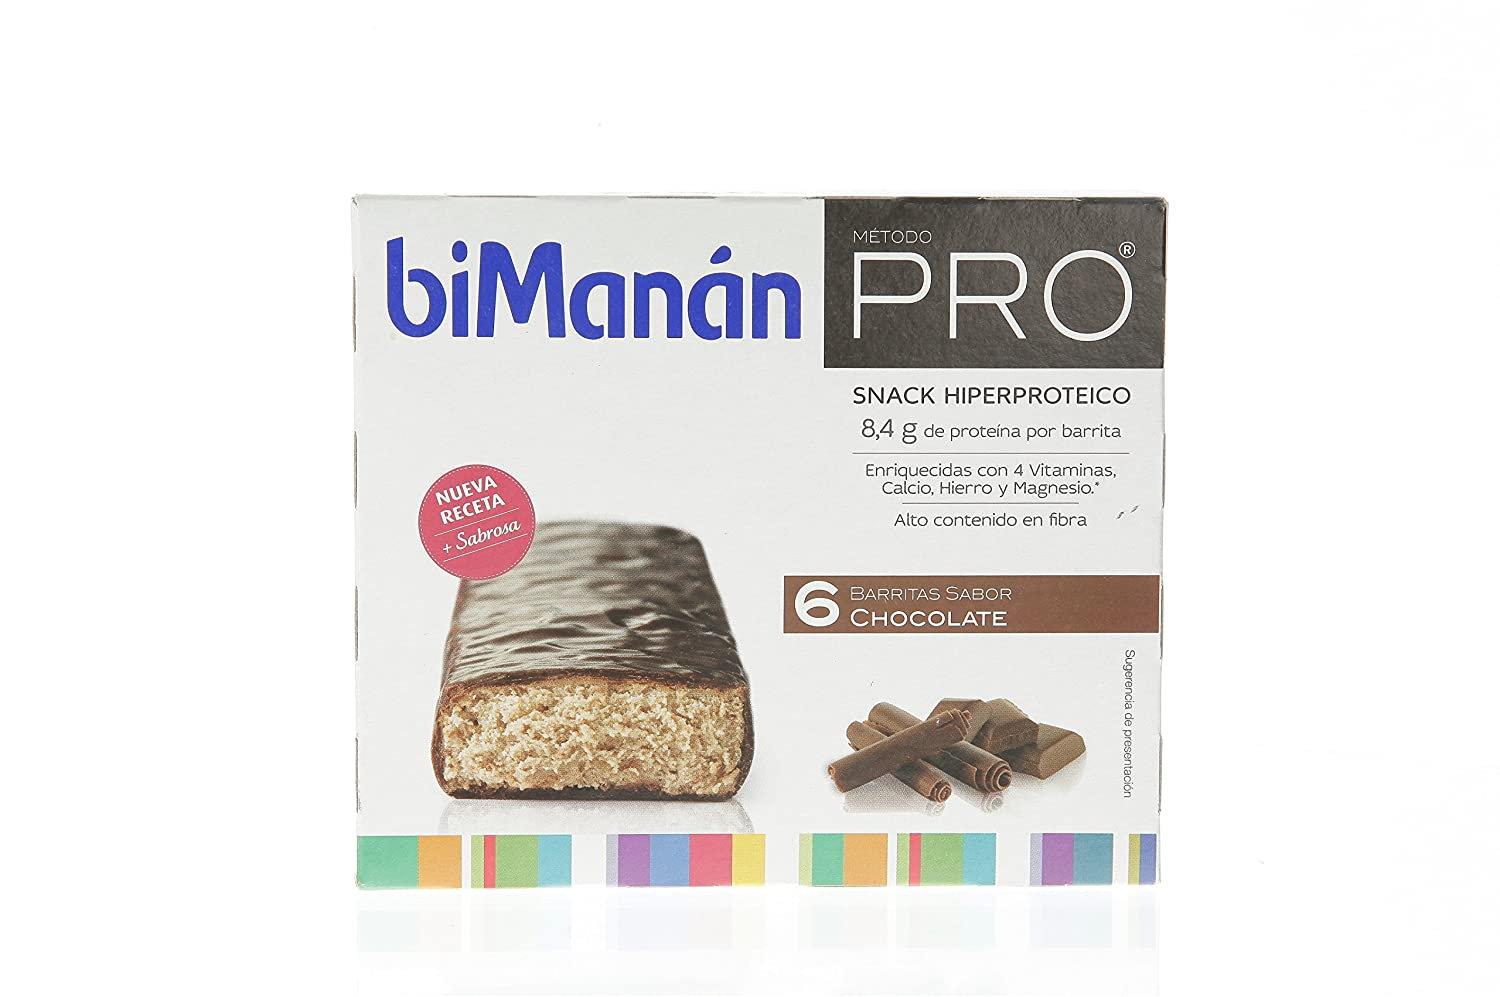 Amazon.com: BIMANAN PROTEIN DIET CHOCOLATE BAR PRO hypocaloric GX 162 G 27 6 U by BIMANAN: Health & Personal Care